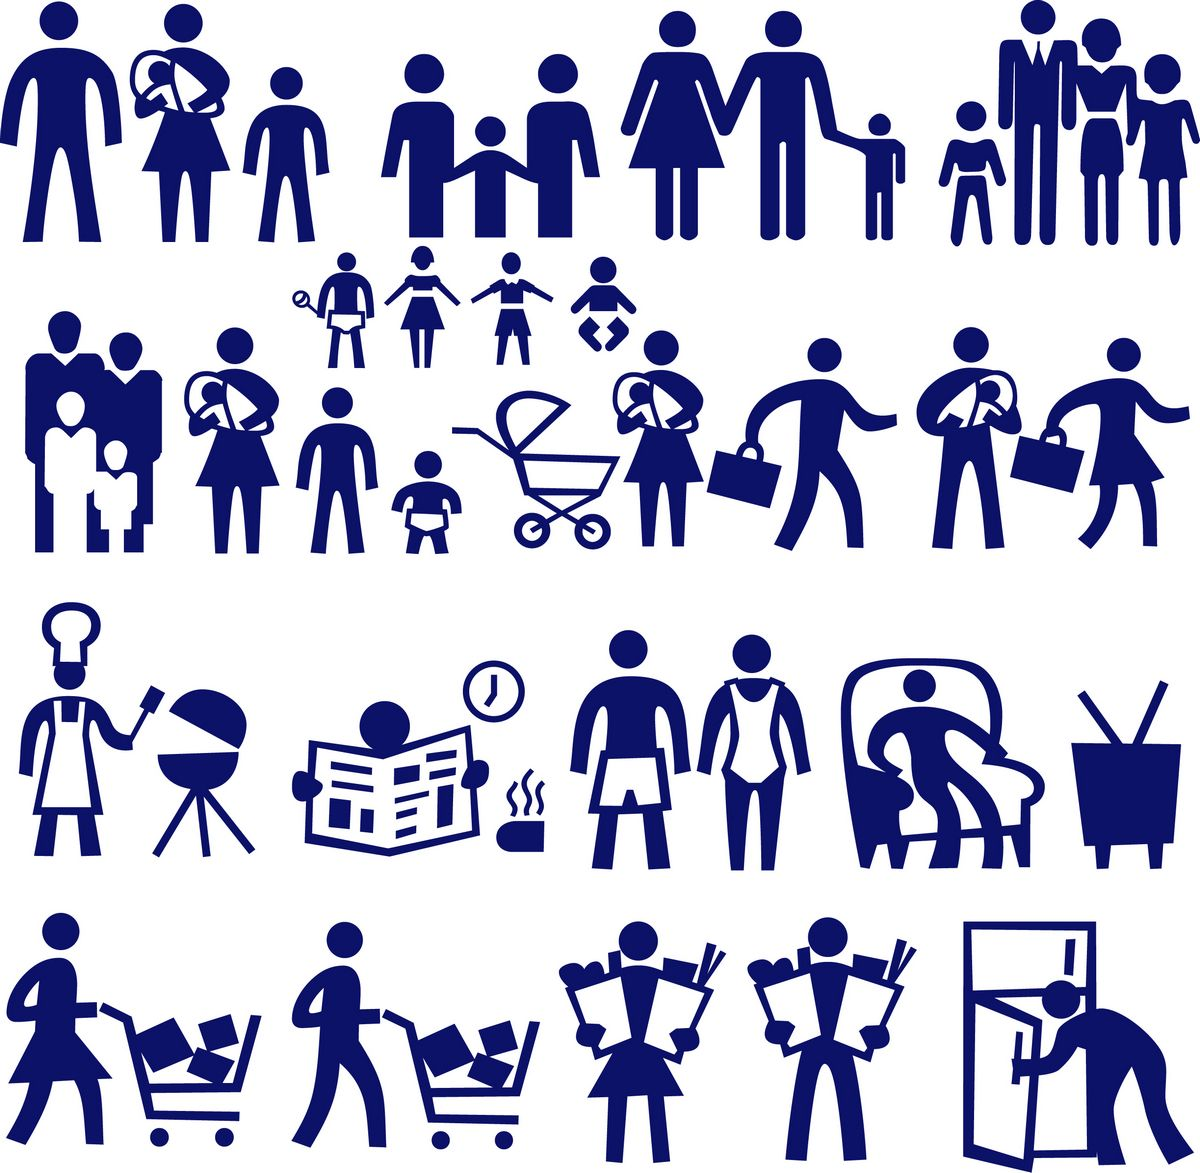 Family characters silhouette png